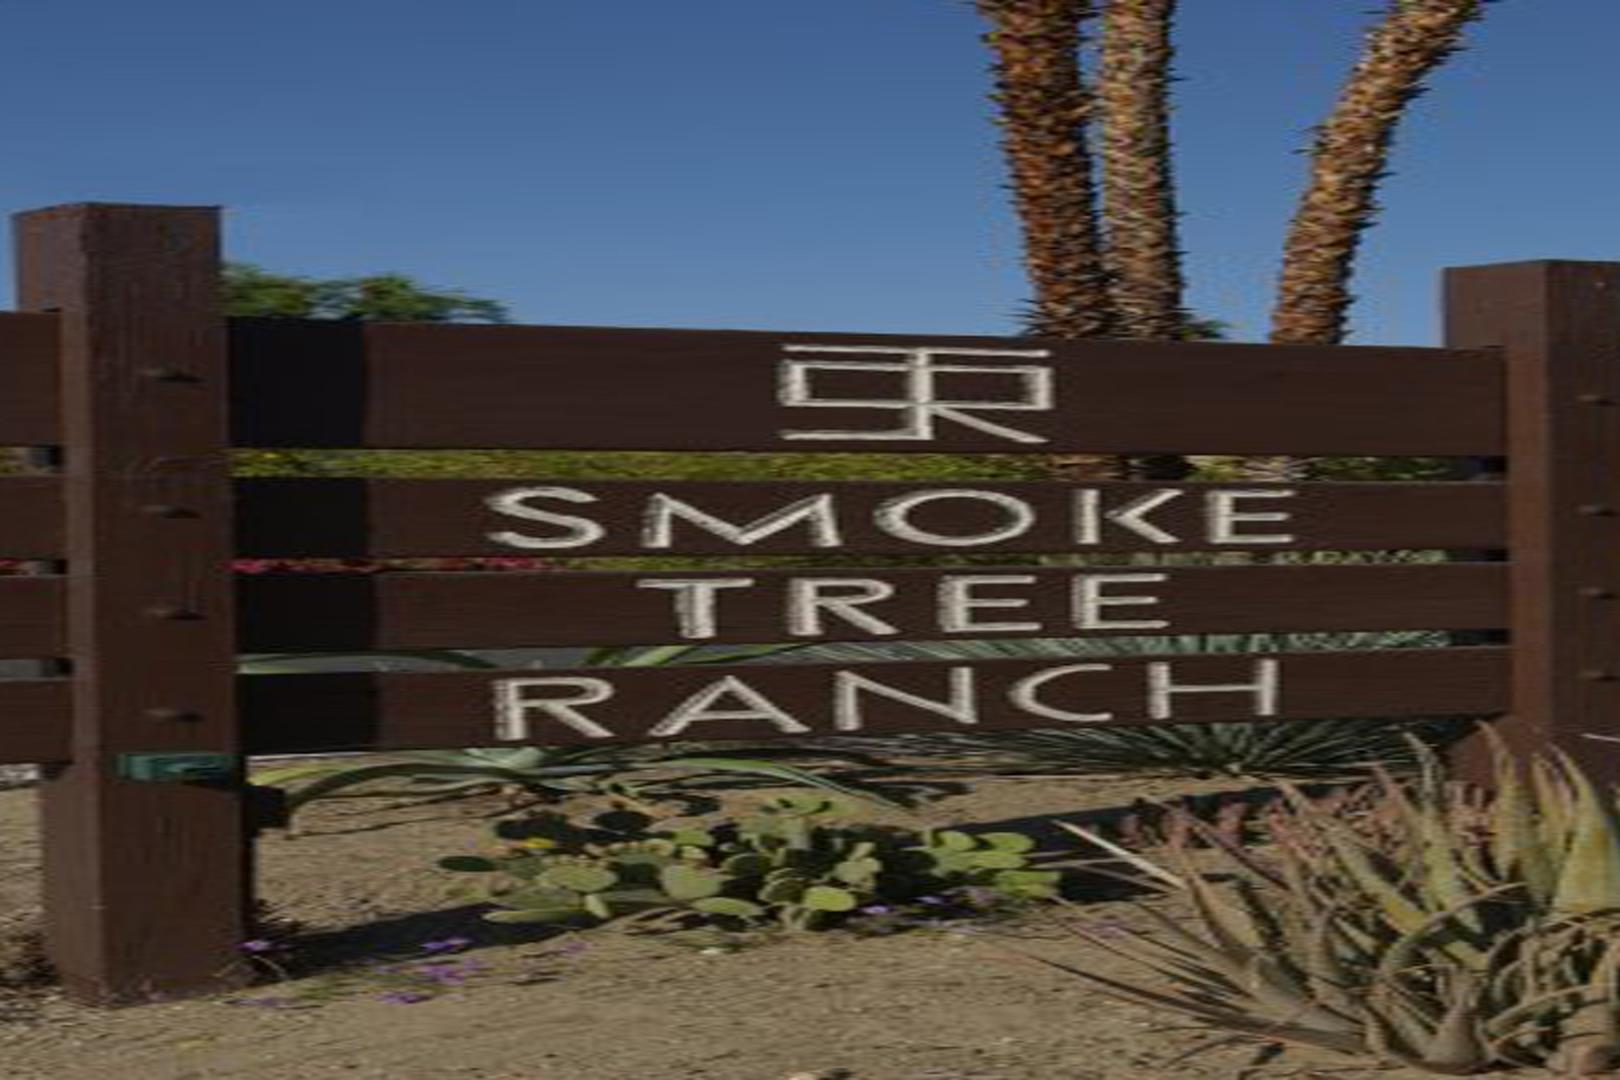 space at Smoke Tree Ranch